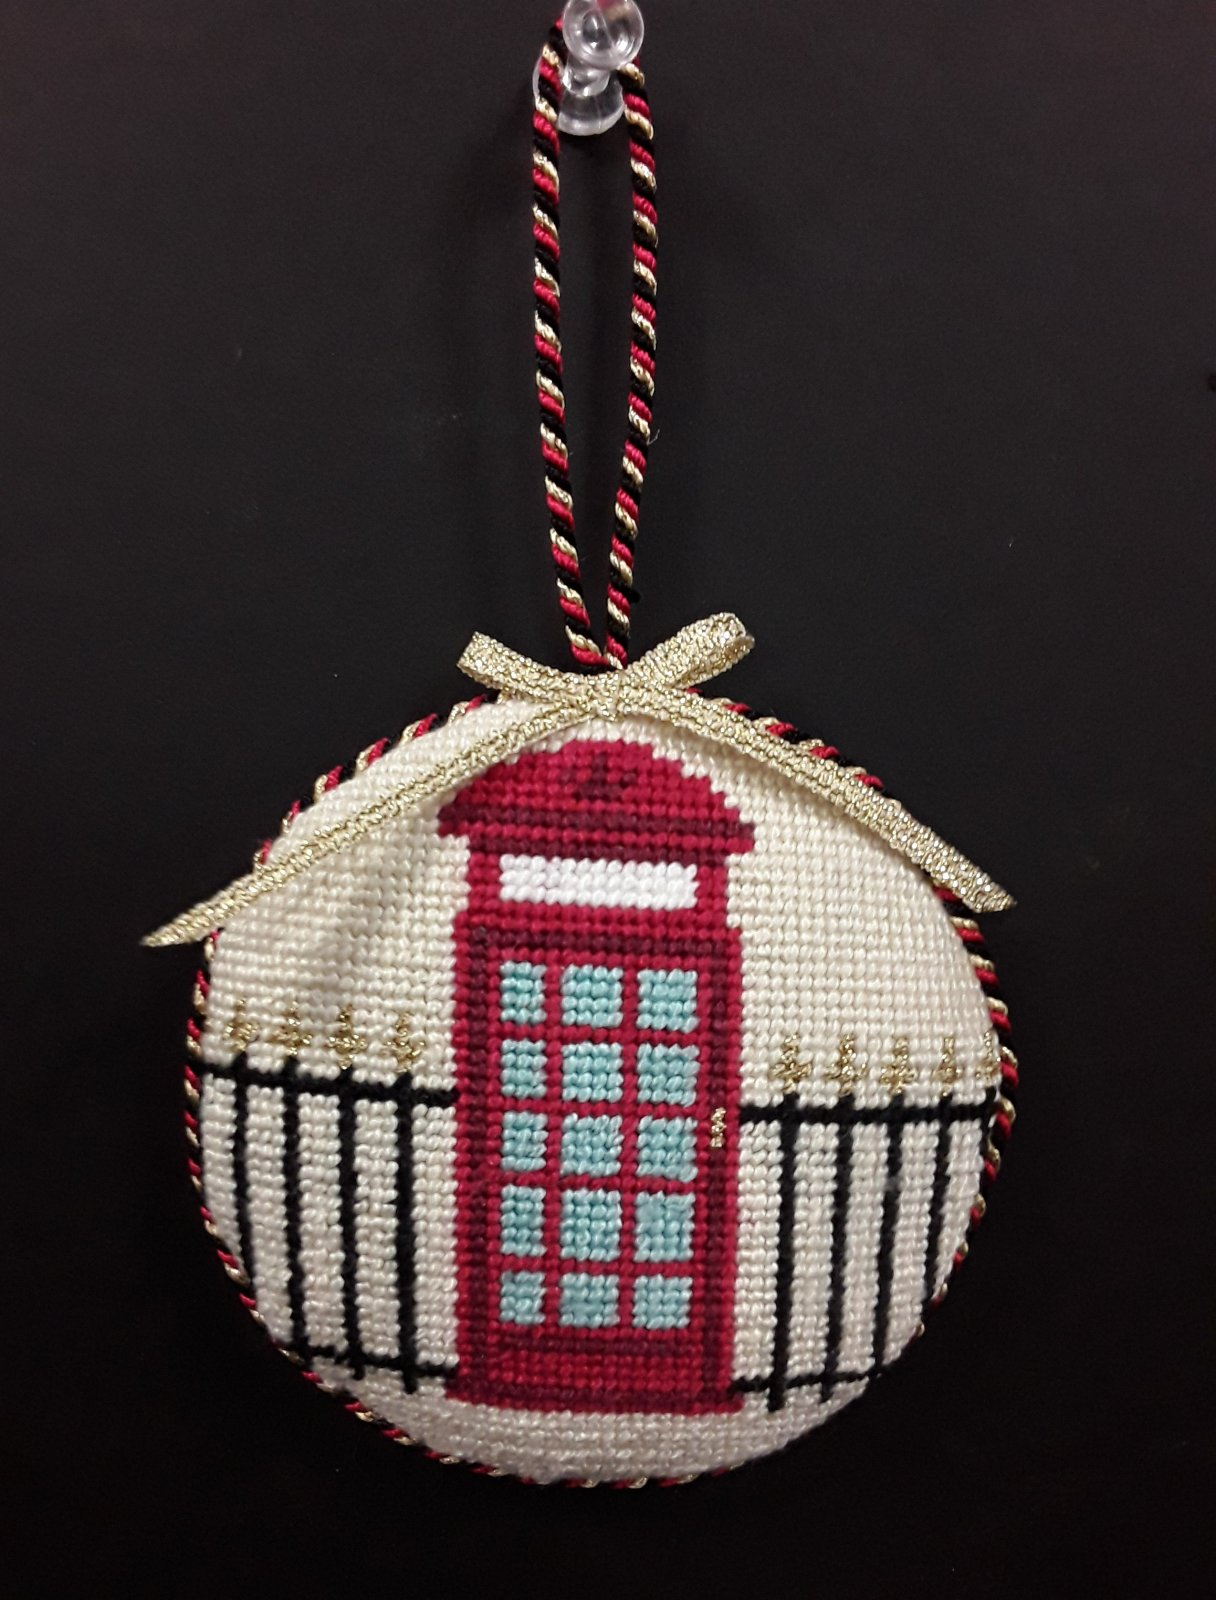 British Call Box  Ornament - Stitched By Barbara K.